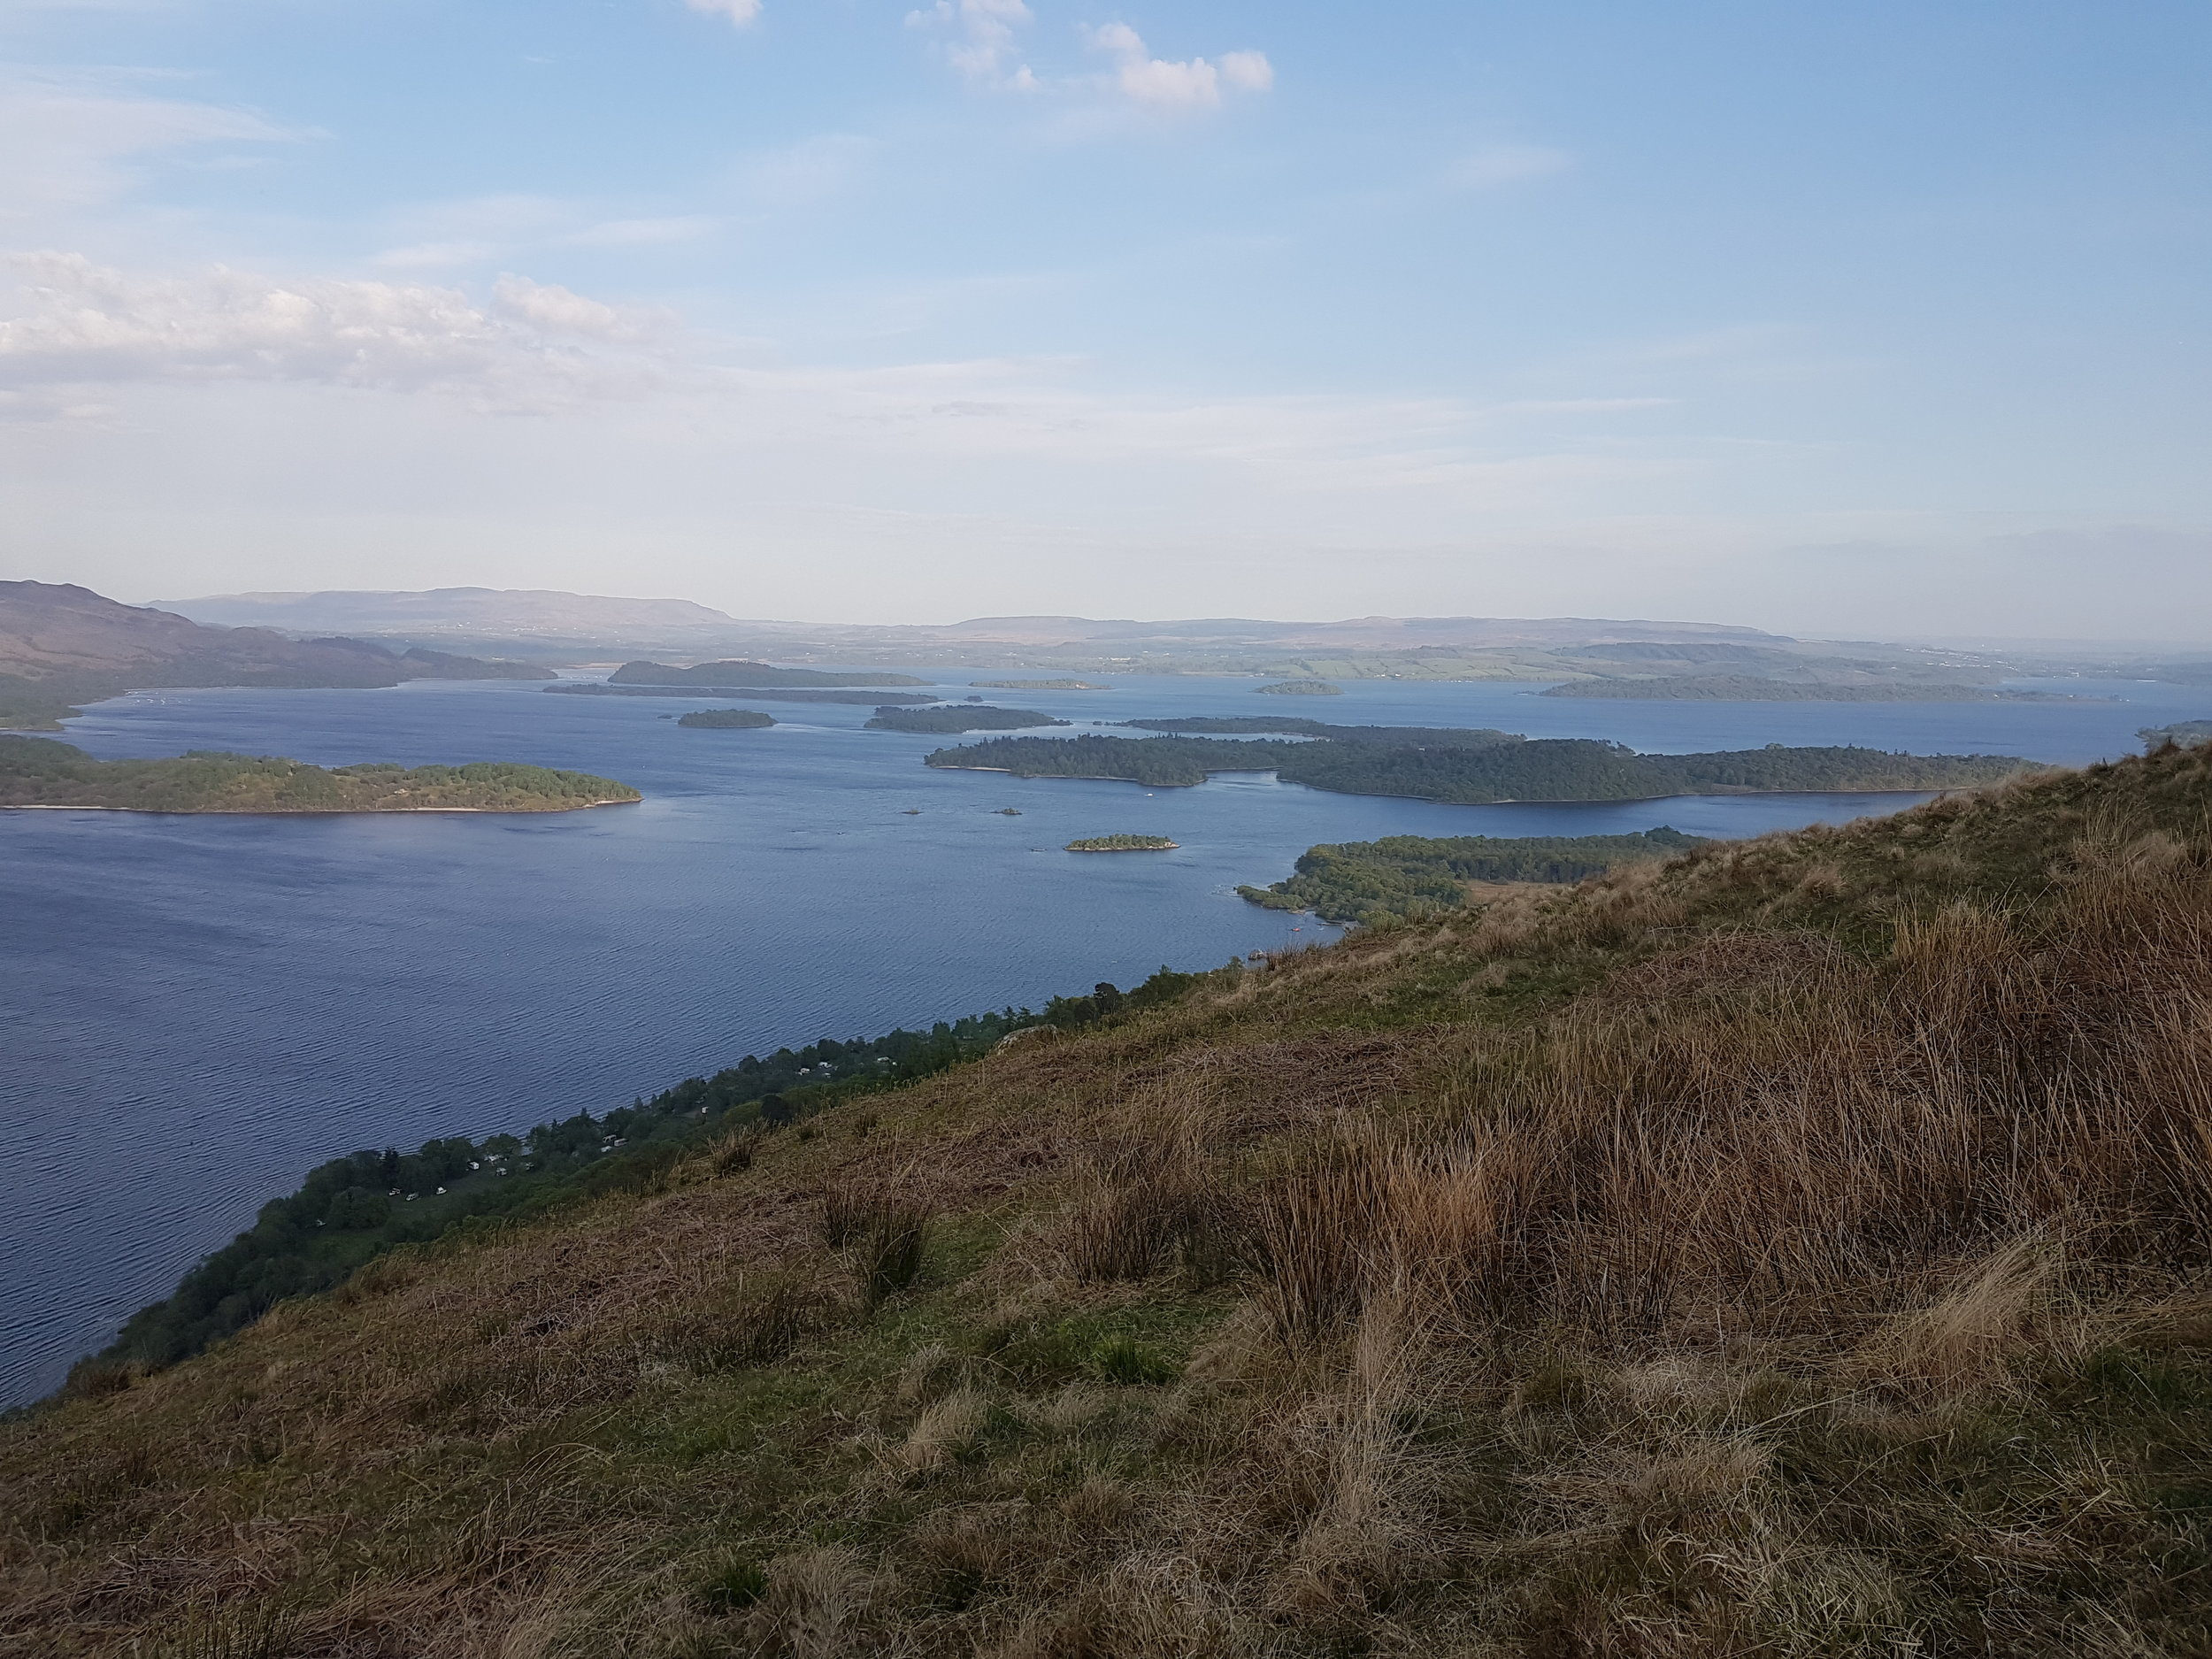 Looking south over Luss and the islands.